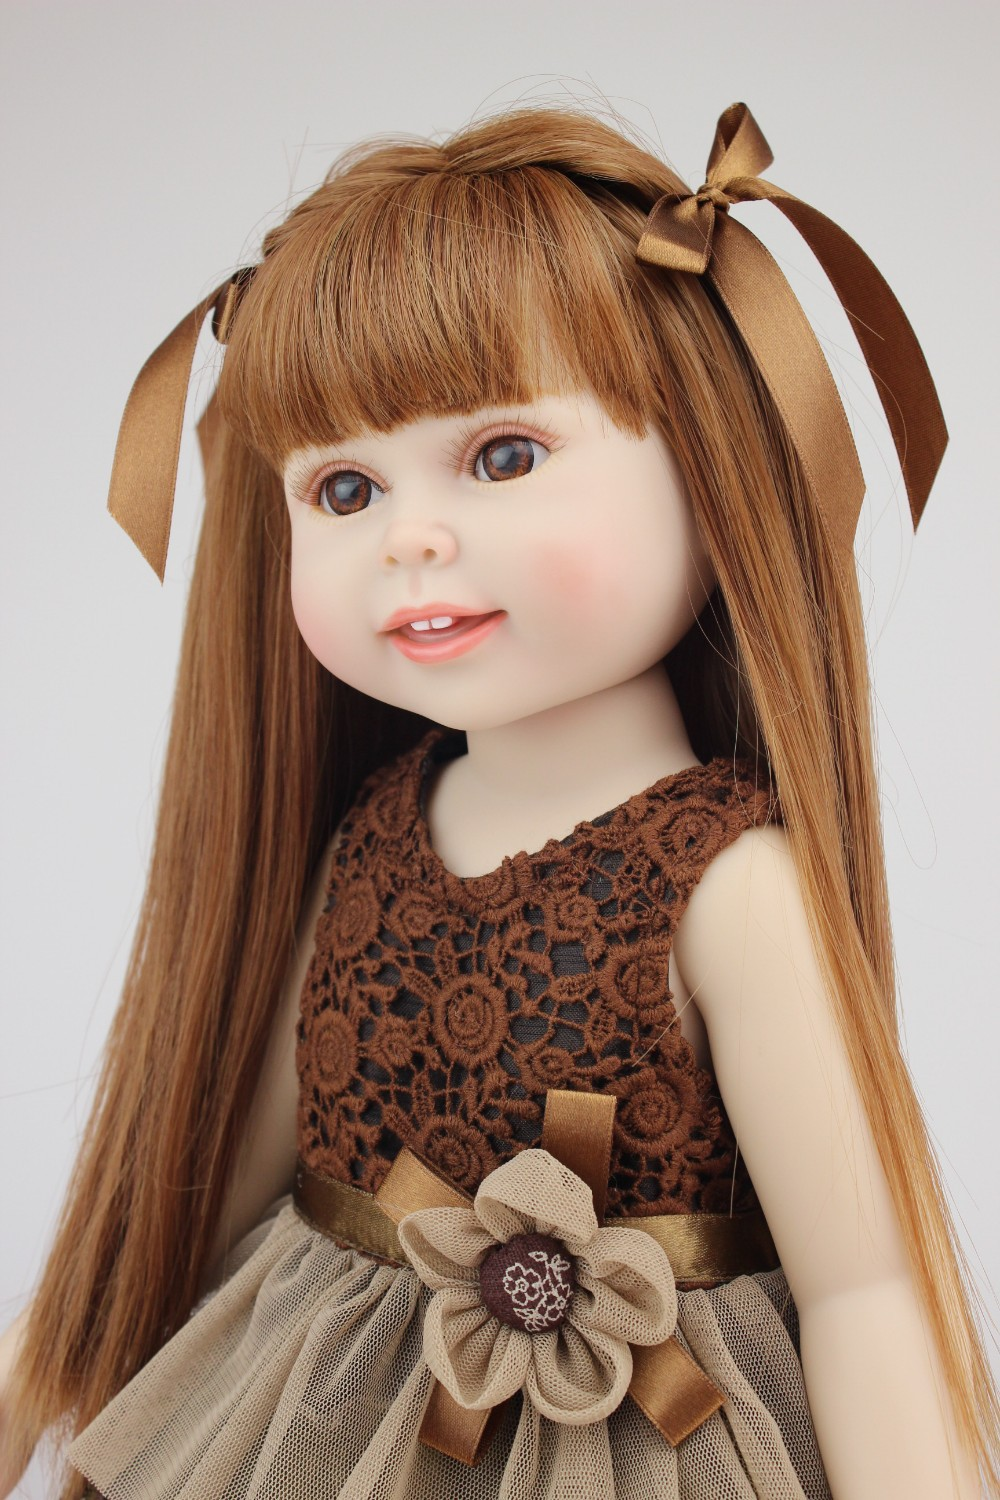 popular 18inches fashion play doll beautiful doll education toy for children